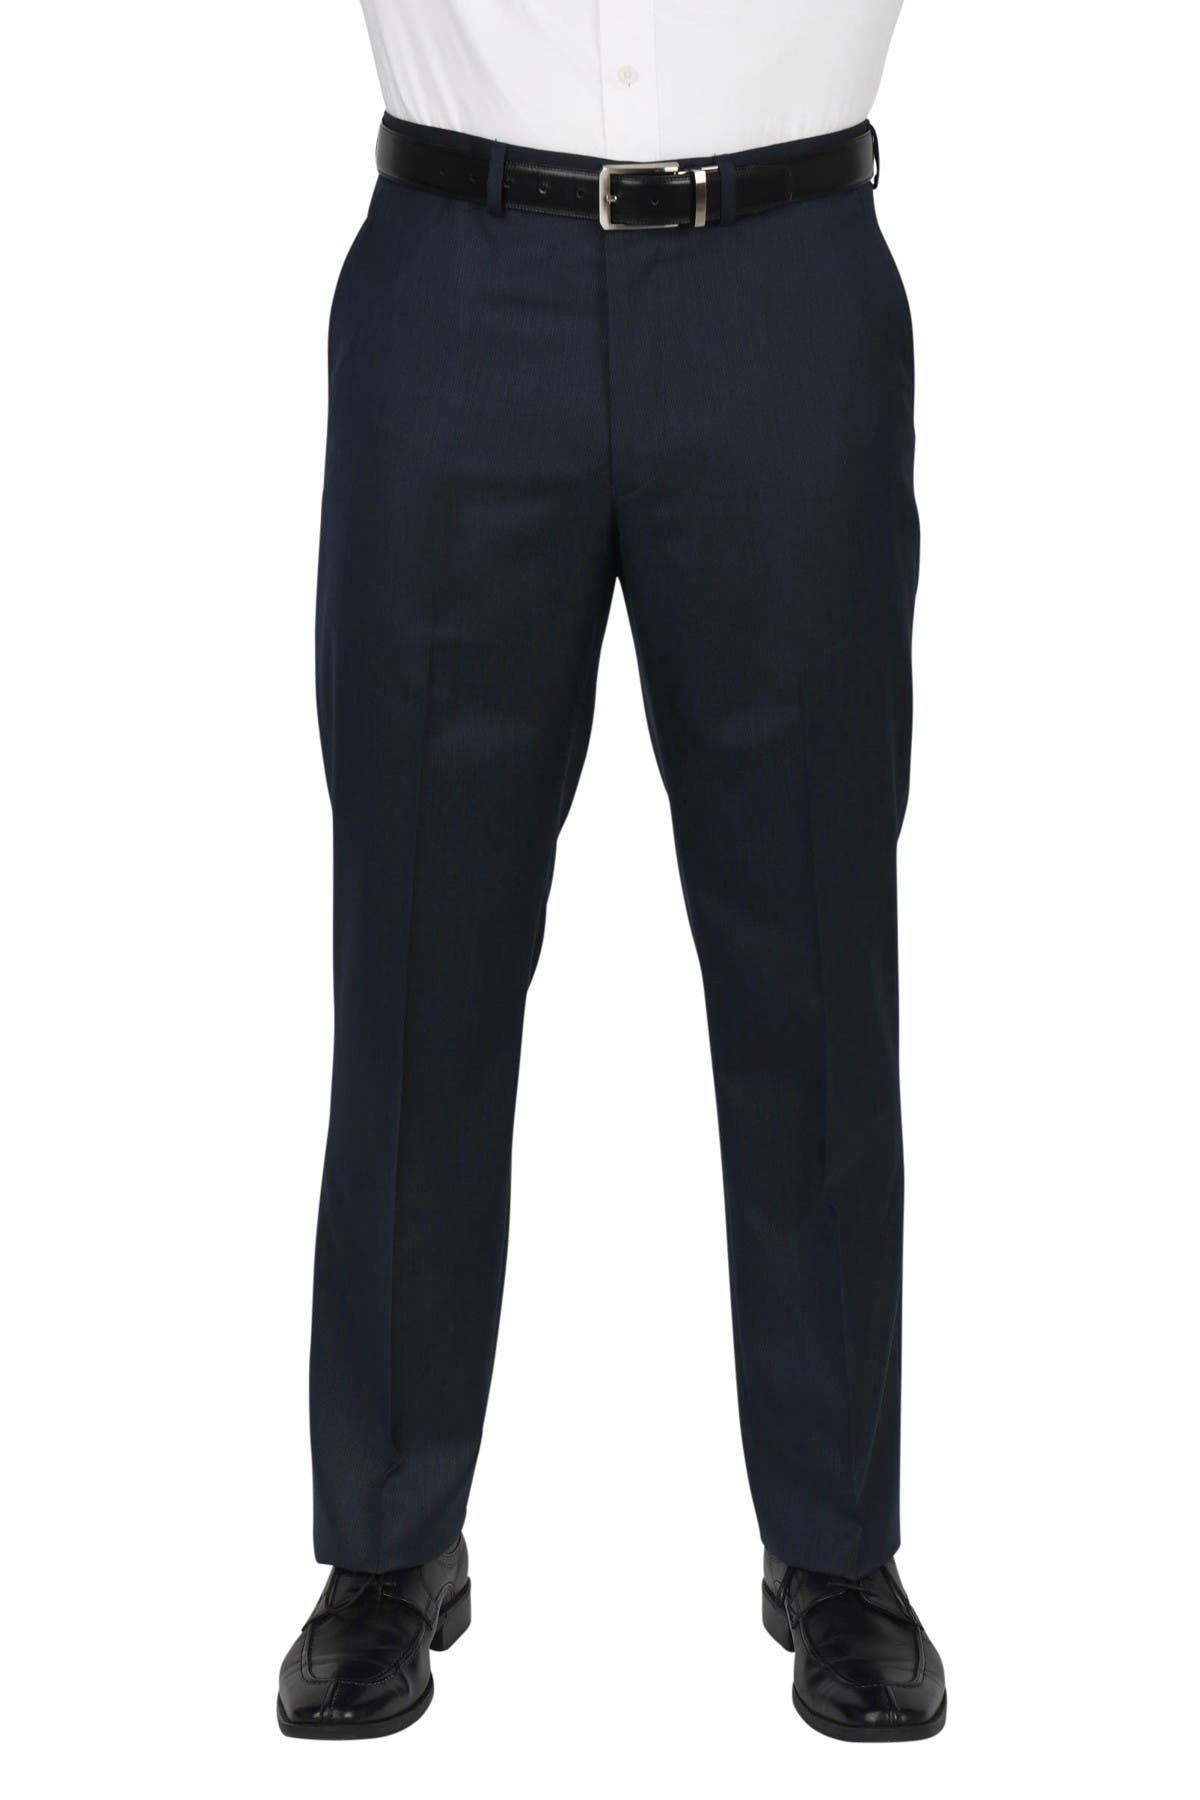 """Image of Dockers Solid Flat Front Stretch Fabric Modern Fit Suit Separate Pants - 30-32"""" Inseam"""